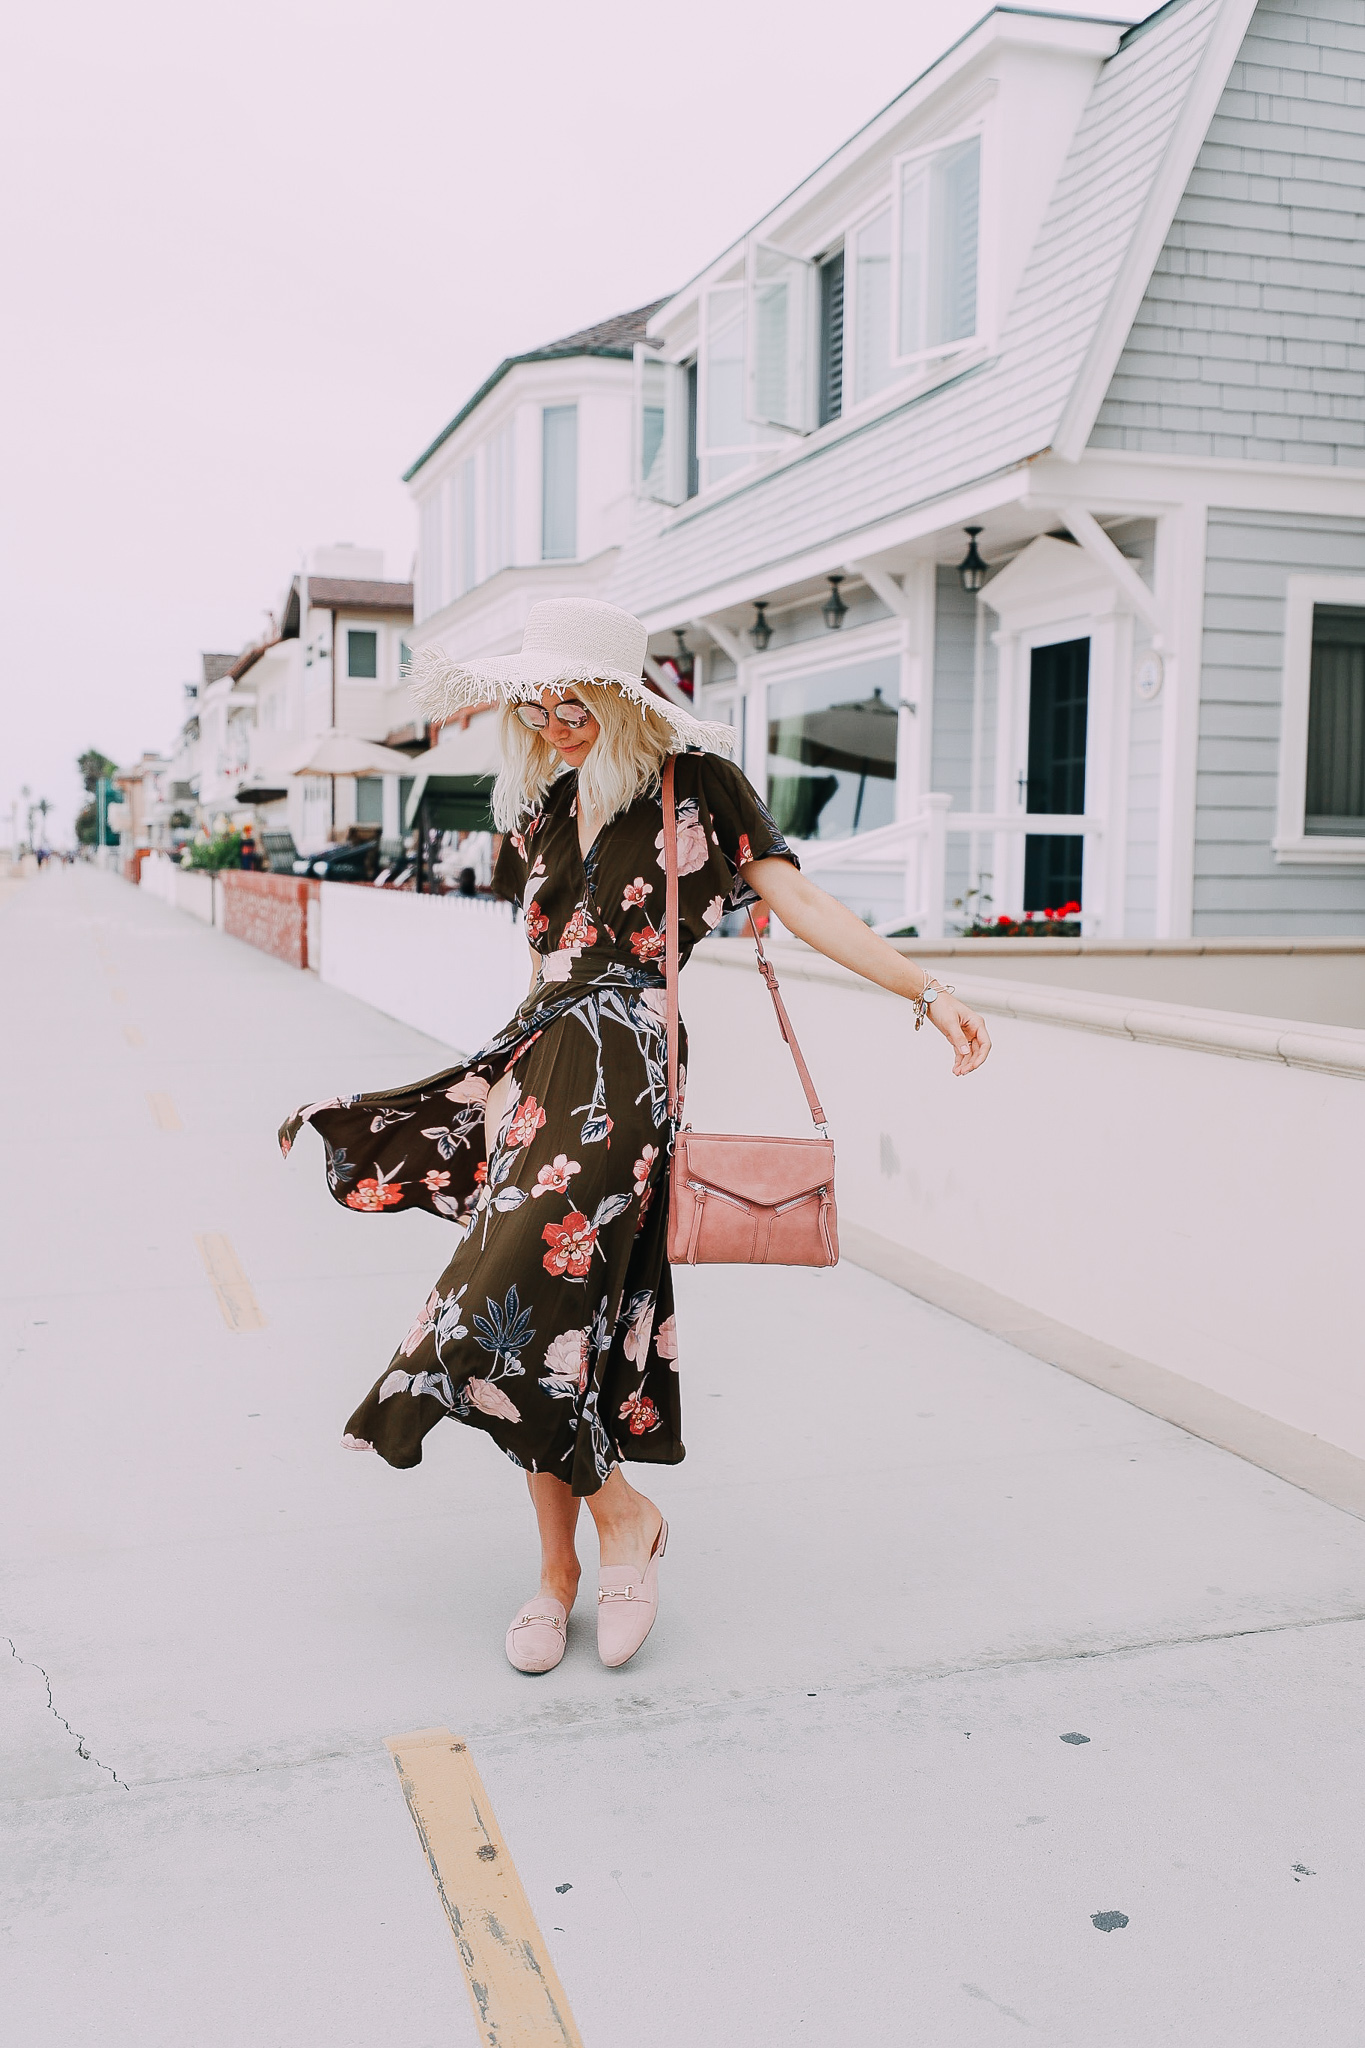 My Favorite Wrap Dresses!